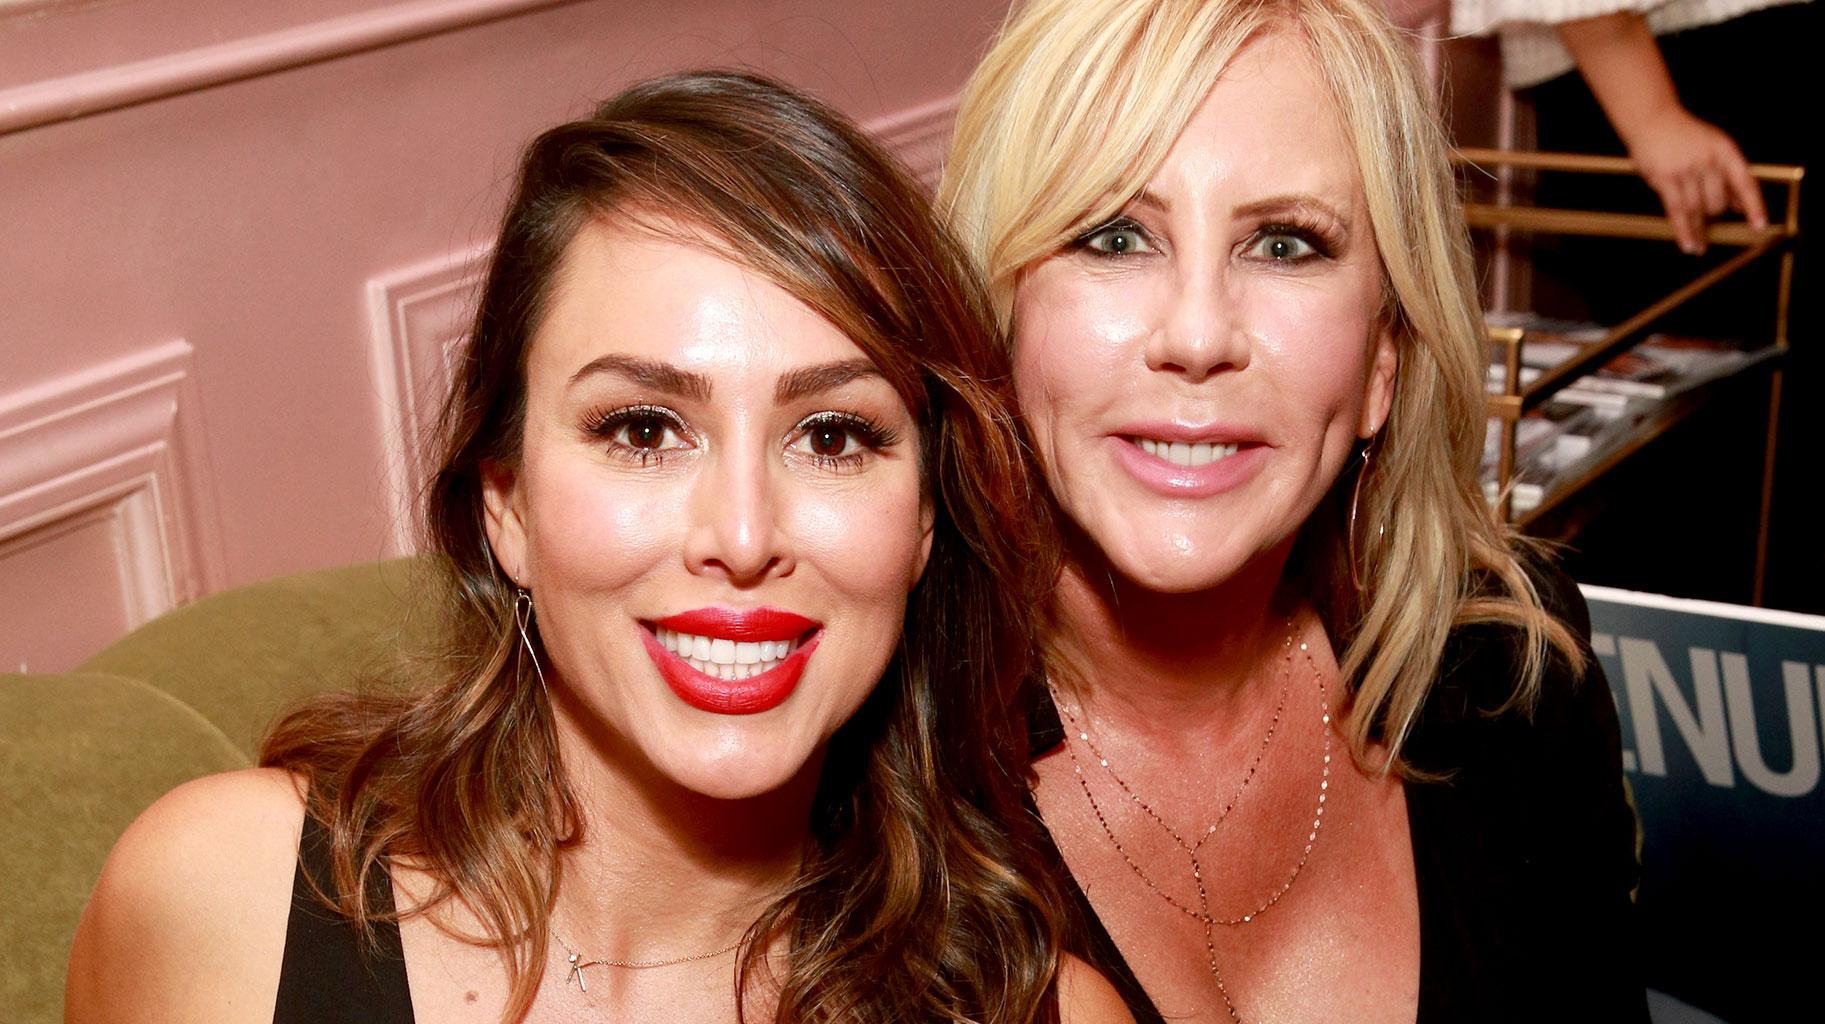 Vicki Gunvalson Thinks Kelly Dodd's Whirlwind Engagement Is For Her RHOC 'Storyline' And 'It's Irresponsible'